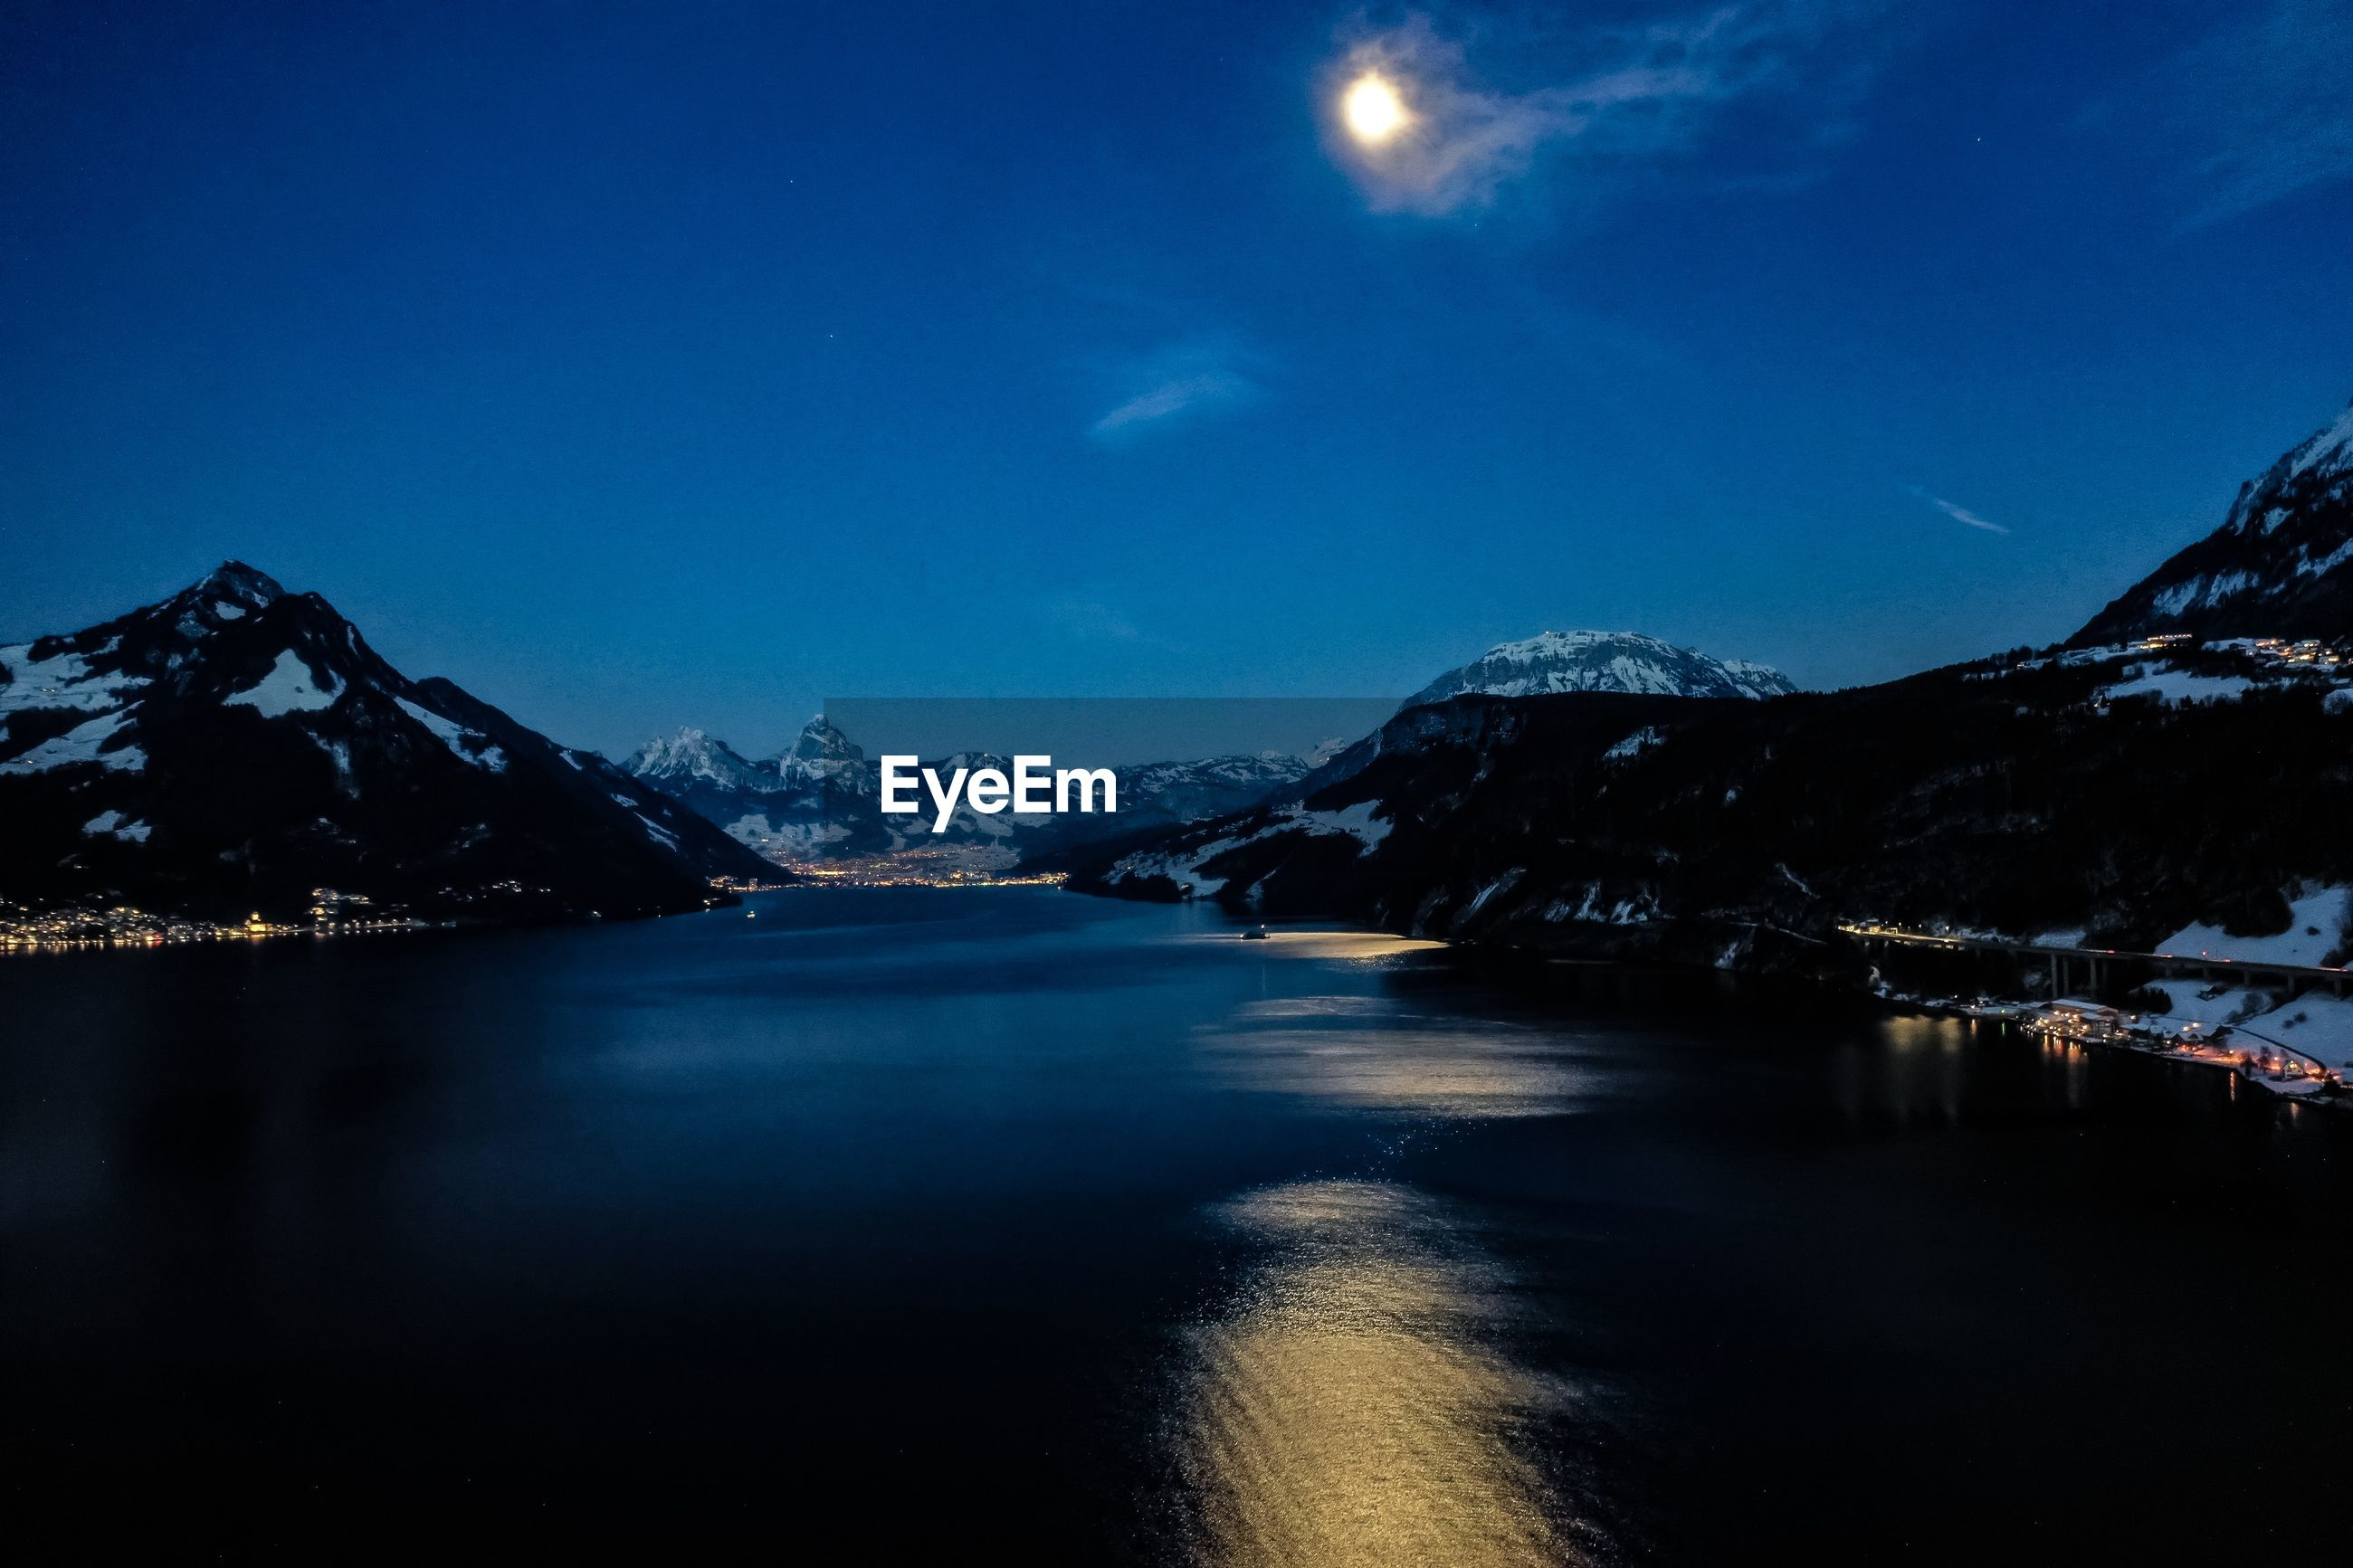 SCENIC VIEW OF LAKE BY ILLUMINATED MOUNTAIN AGAINST SKY AT NIGHT